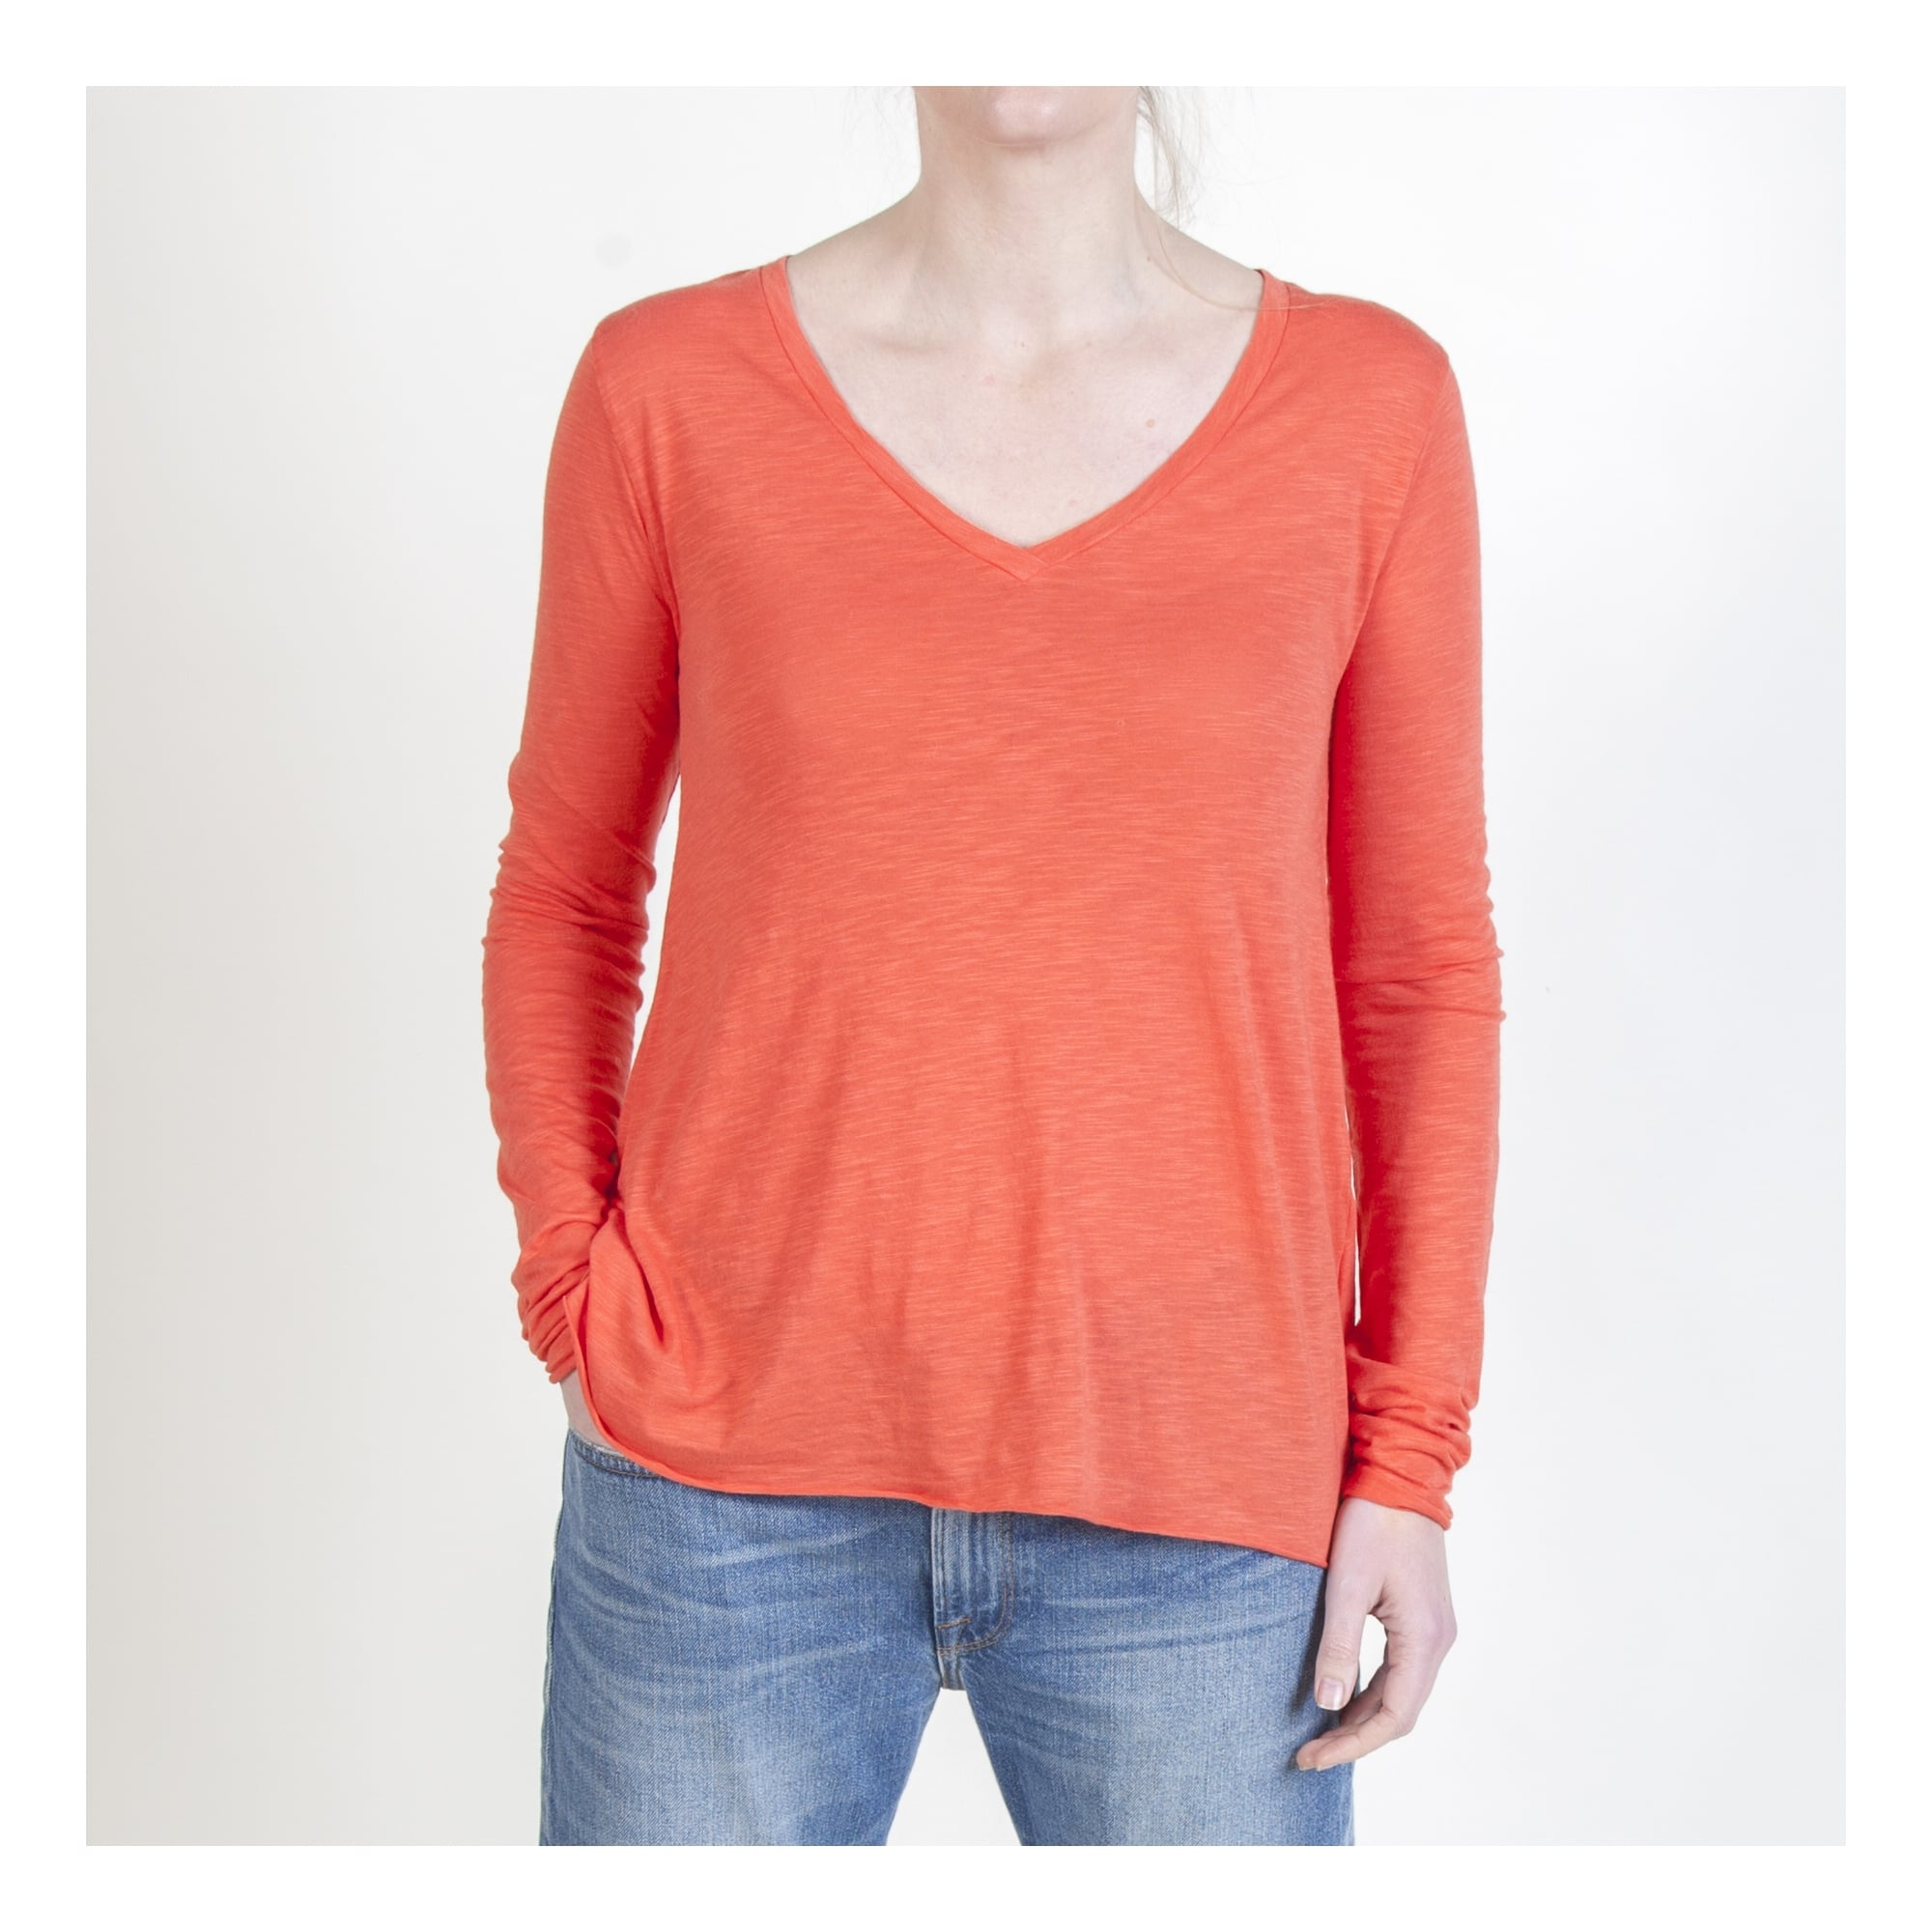 0d302448cbccce American Vintage Jacksonville V Neck Long Sleeve Tee in Red | Collen ...